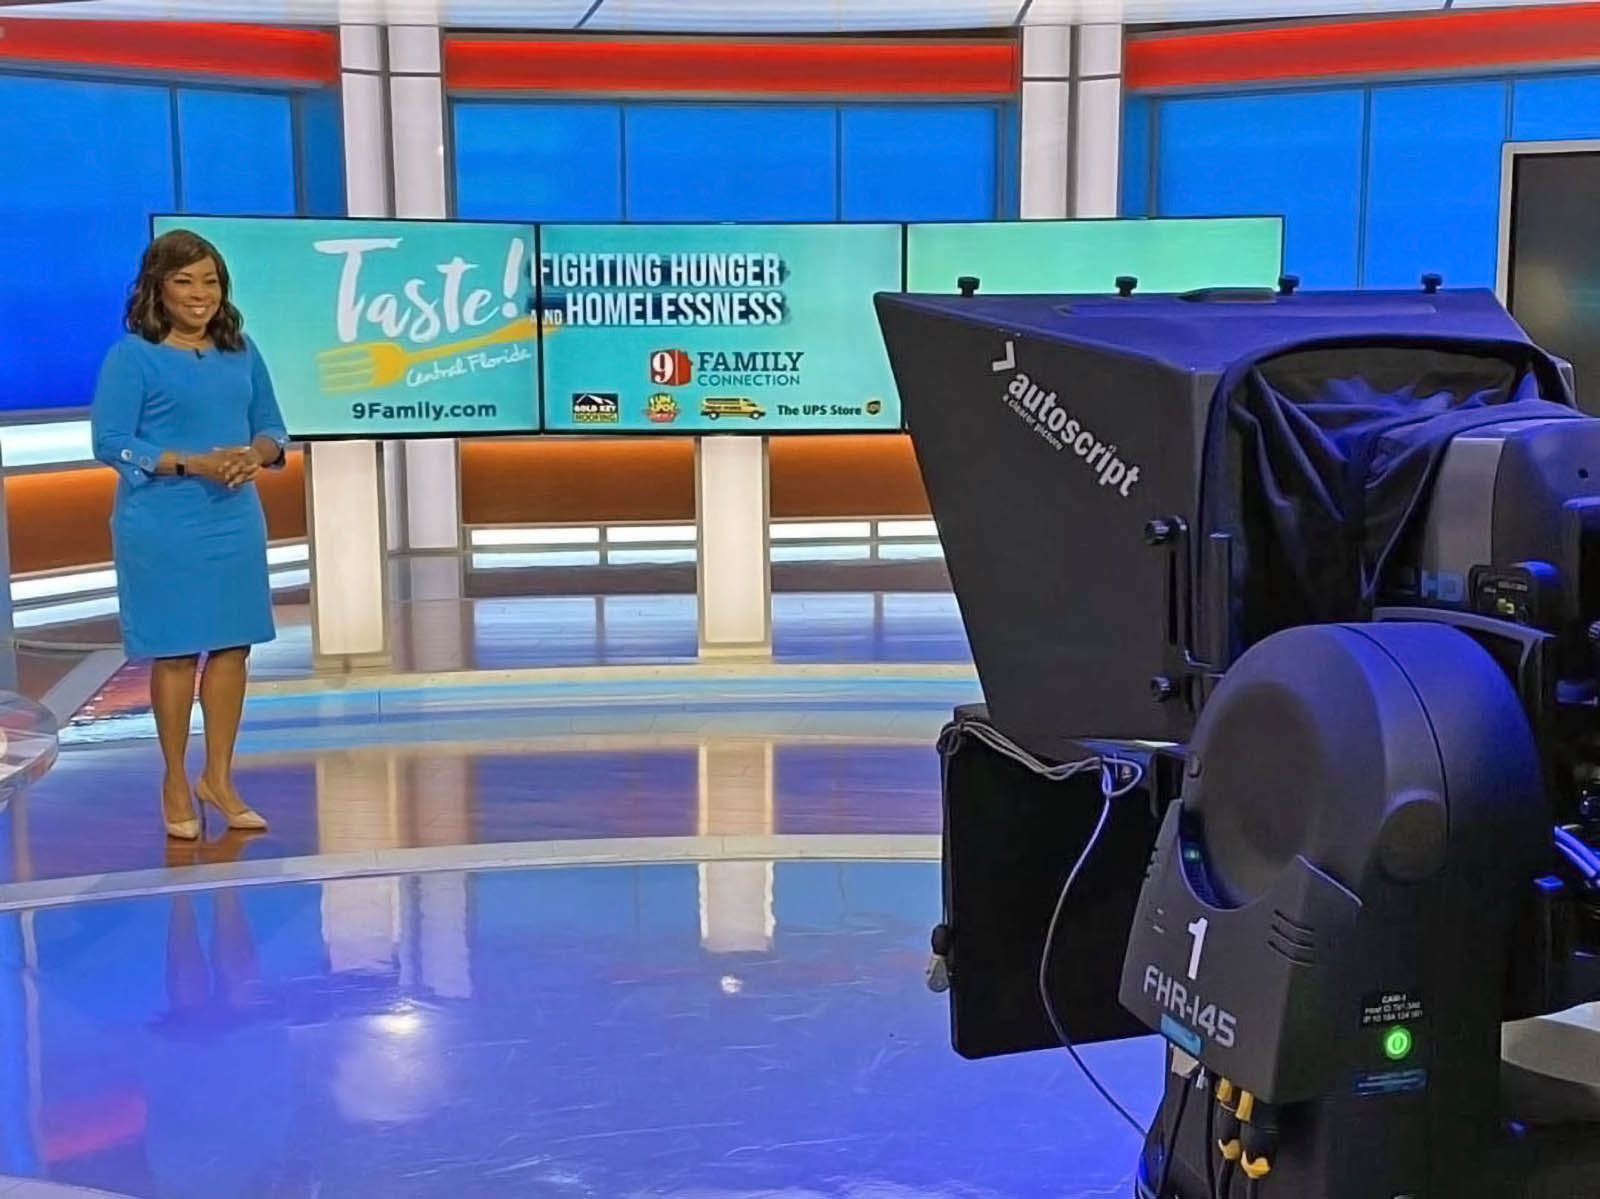 WFTV News live broadcasting set